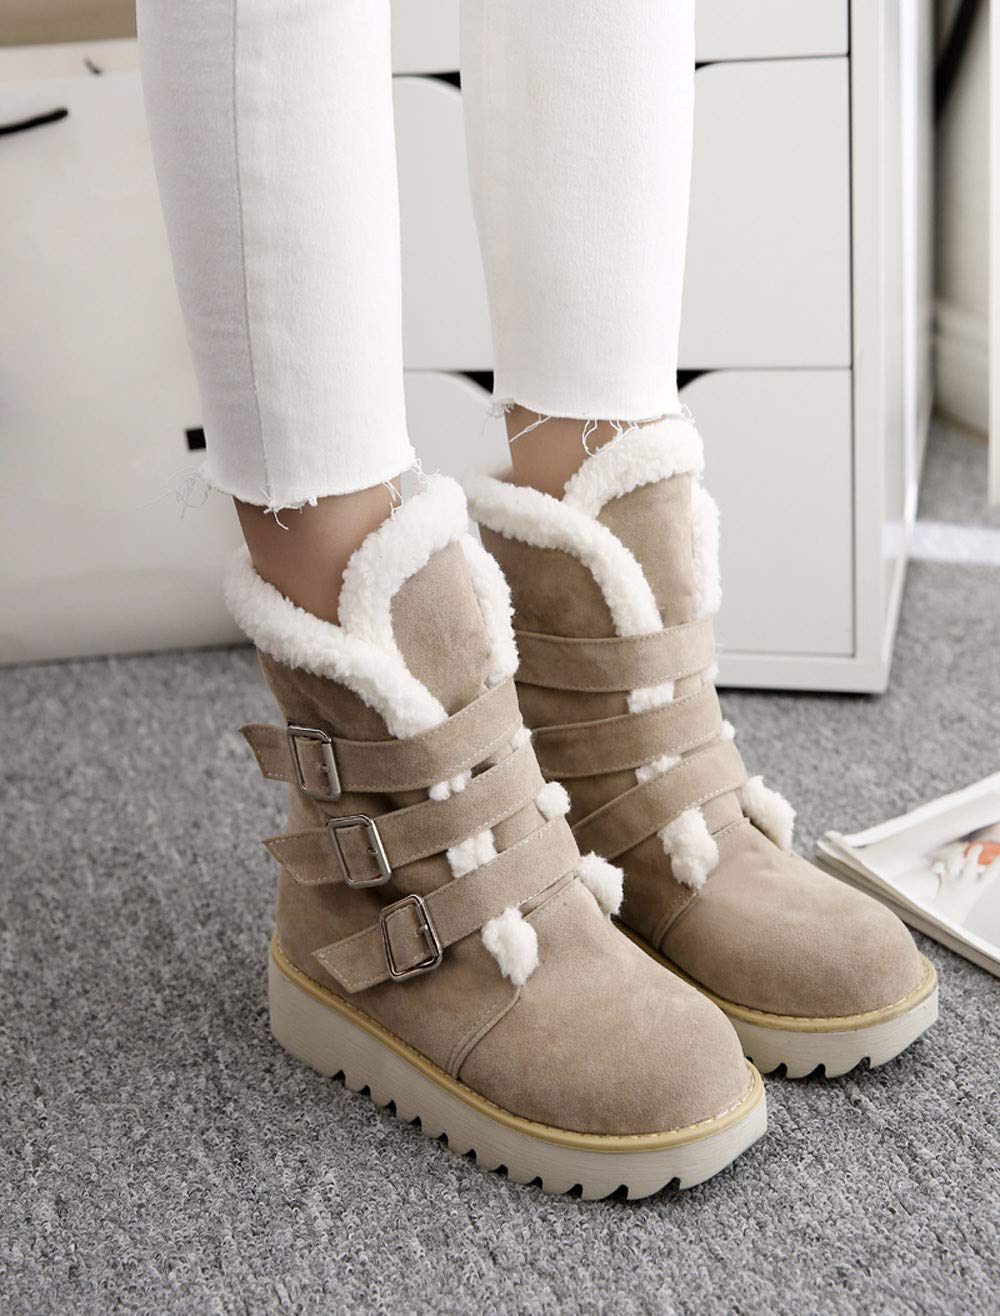 Respctful ♪☆ Women's Fashion Maiden Snow Boot Round Toe Booties Solid Flat Boots Warm Ankle Boots for Winter by Respctful (Image #4)